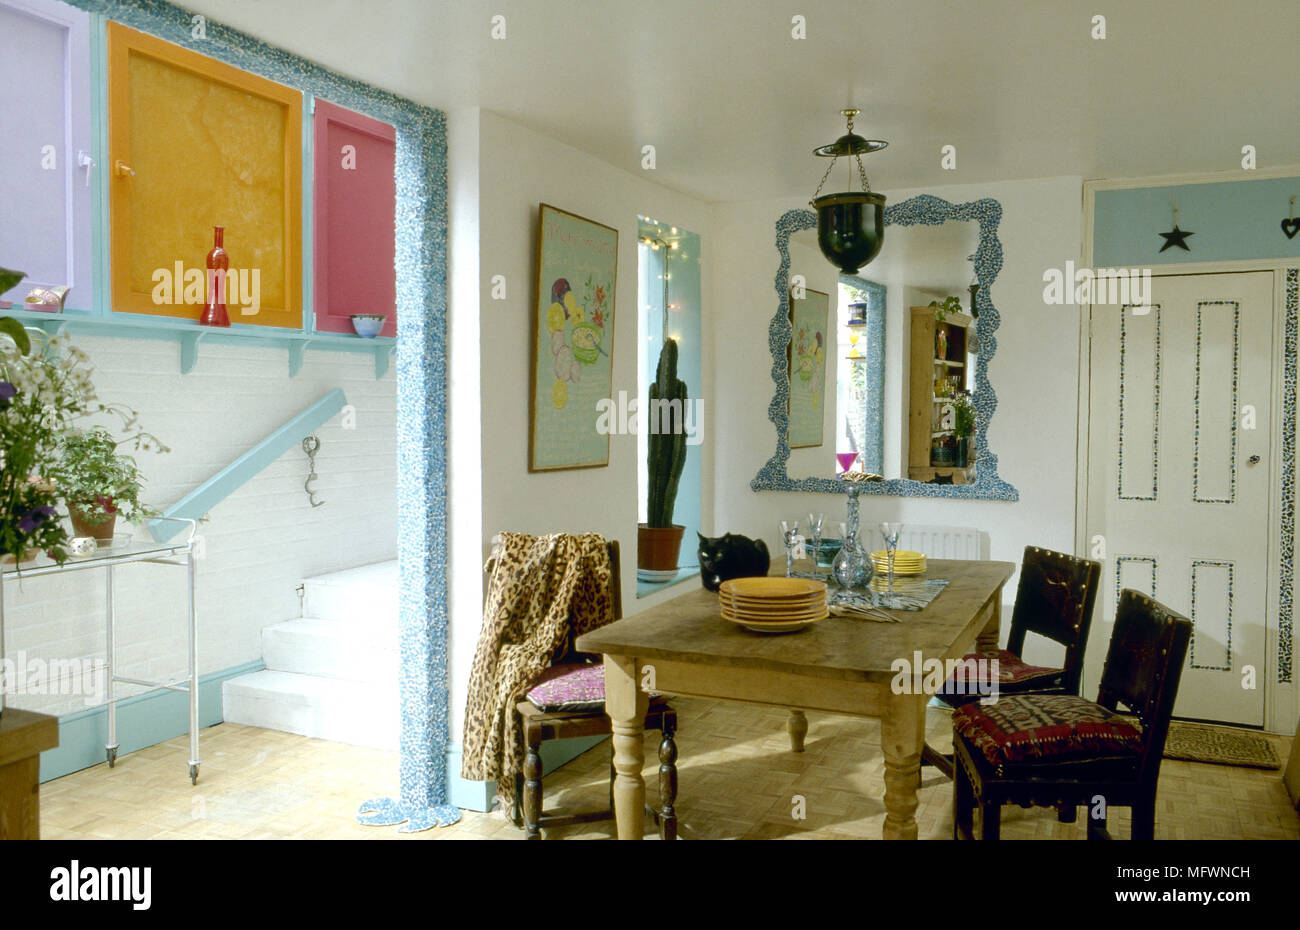 Eclectic Dining Room With Decorative Paint Accents, Wooden Dining Table And  Chairs, And A Doorway To An Adjacent Hallway.